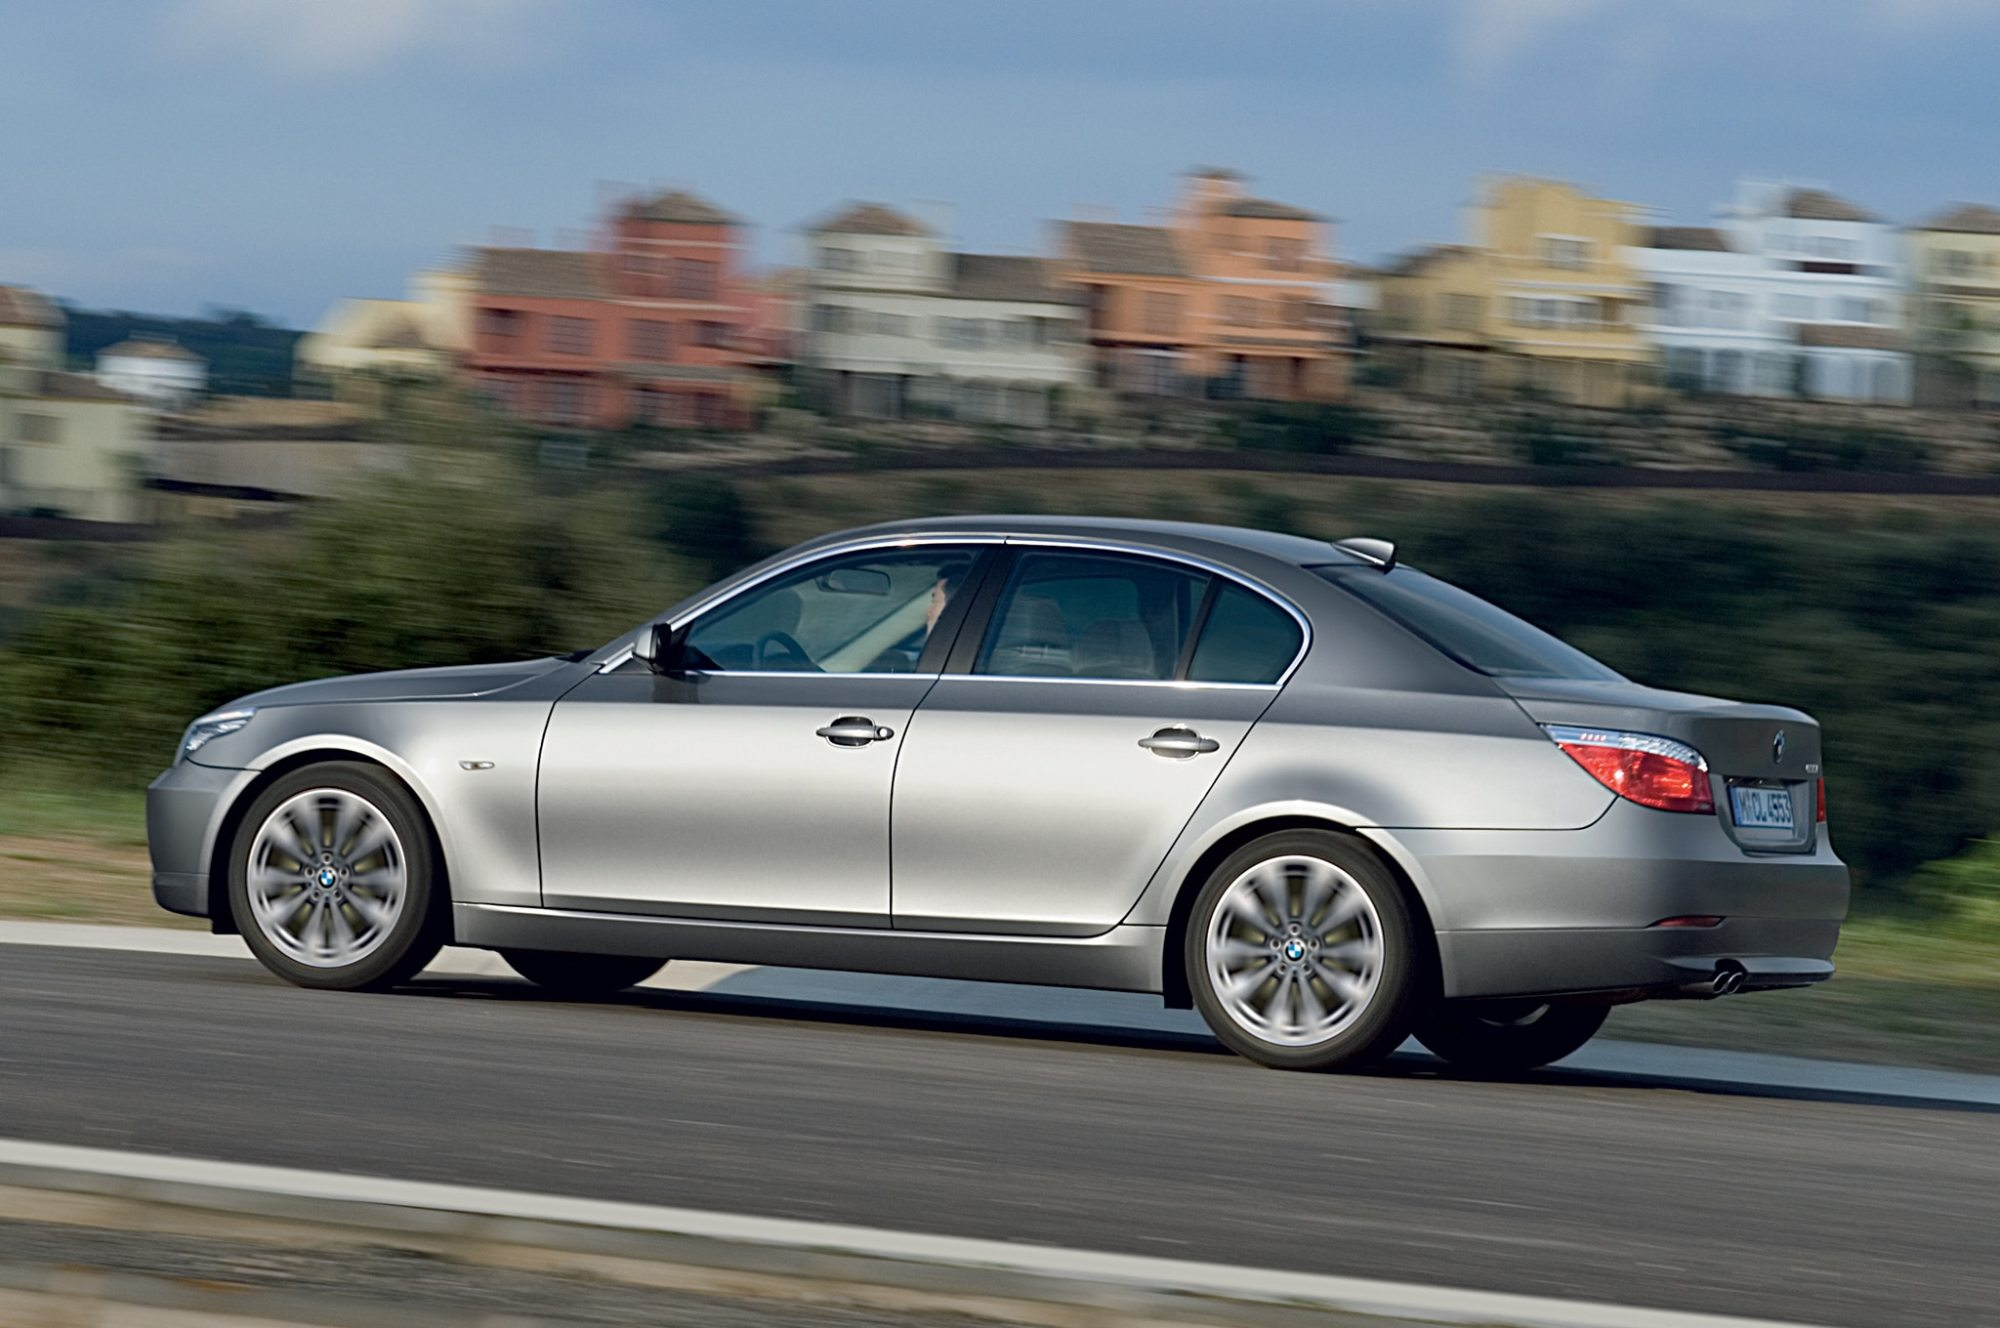 hight resolution of  bmw 535 2010 2008 2010 bmw 5 series recalled for taillight flaw